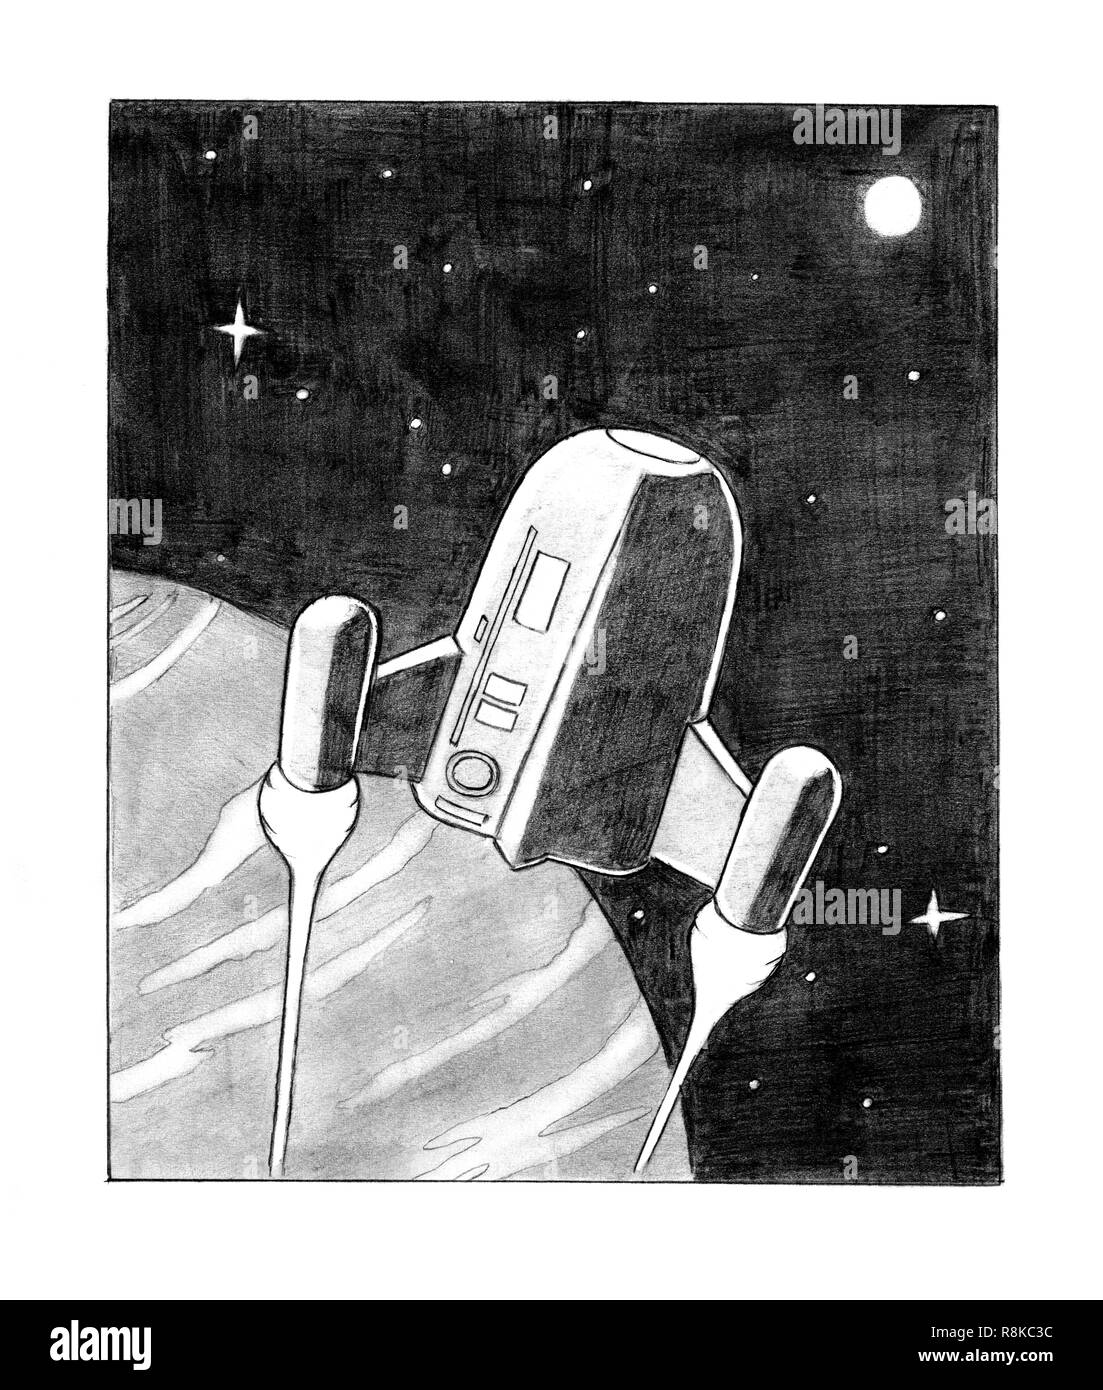 Pencil Drawing of sci-fi Spaceship on Planet Orbit - Stock Image